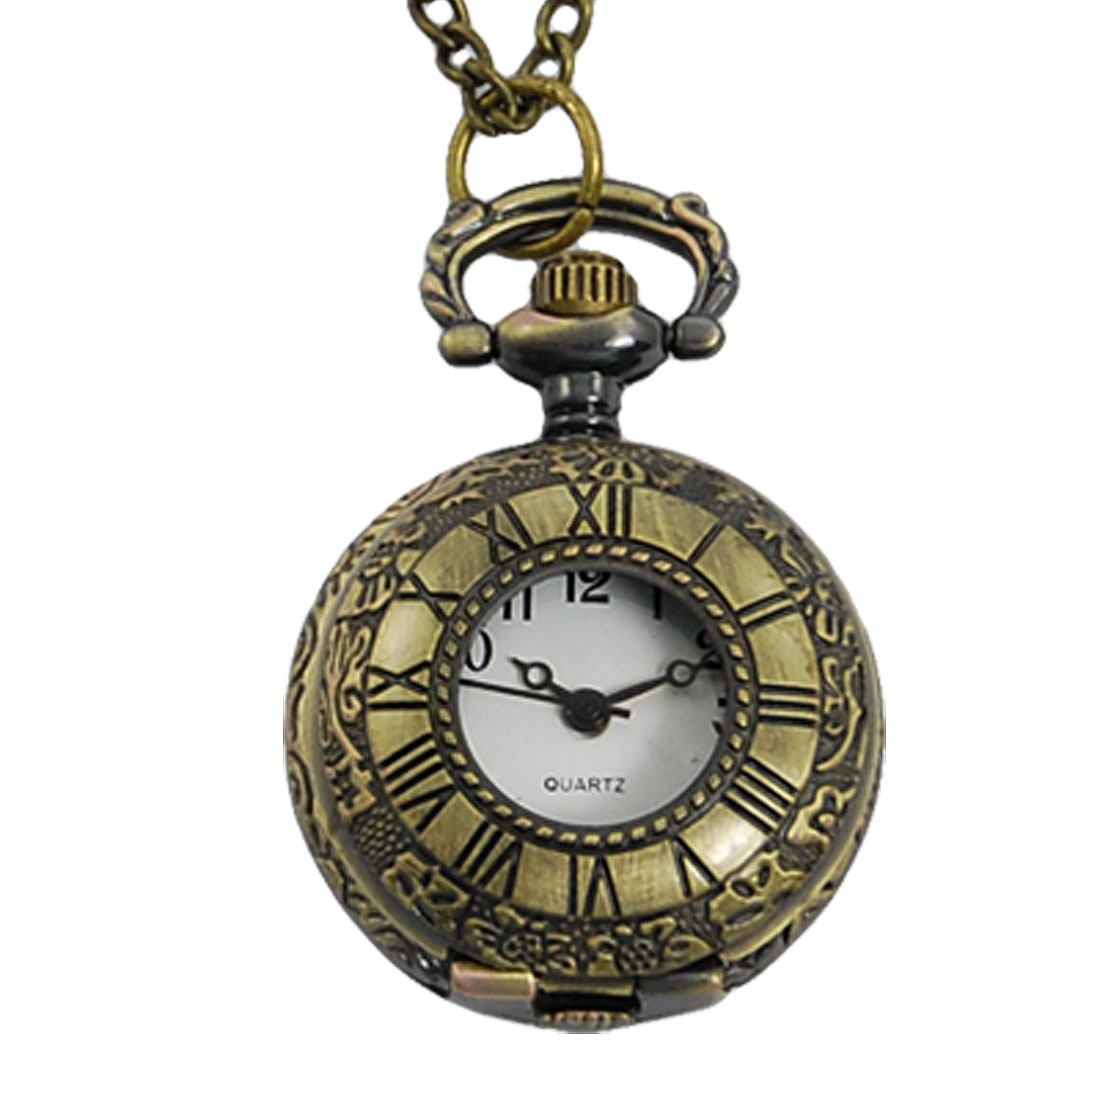 Ladies Brass Tone Floral Printed Quartz Pocket Watch Necklace